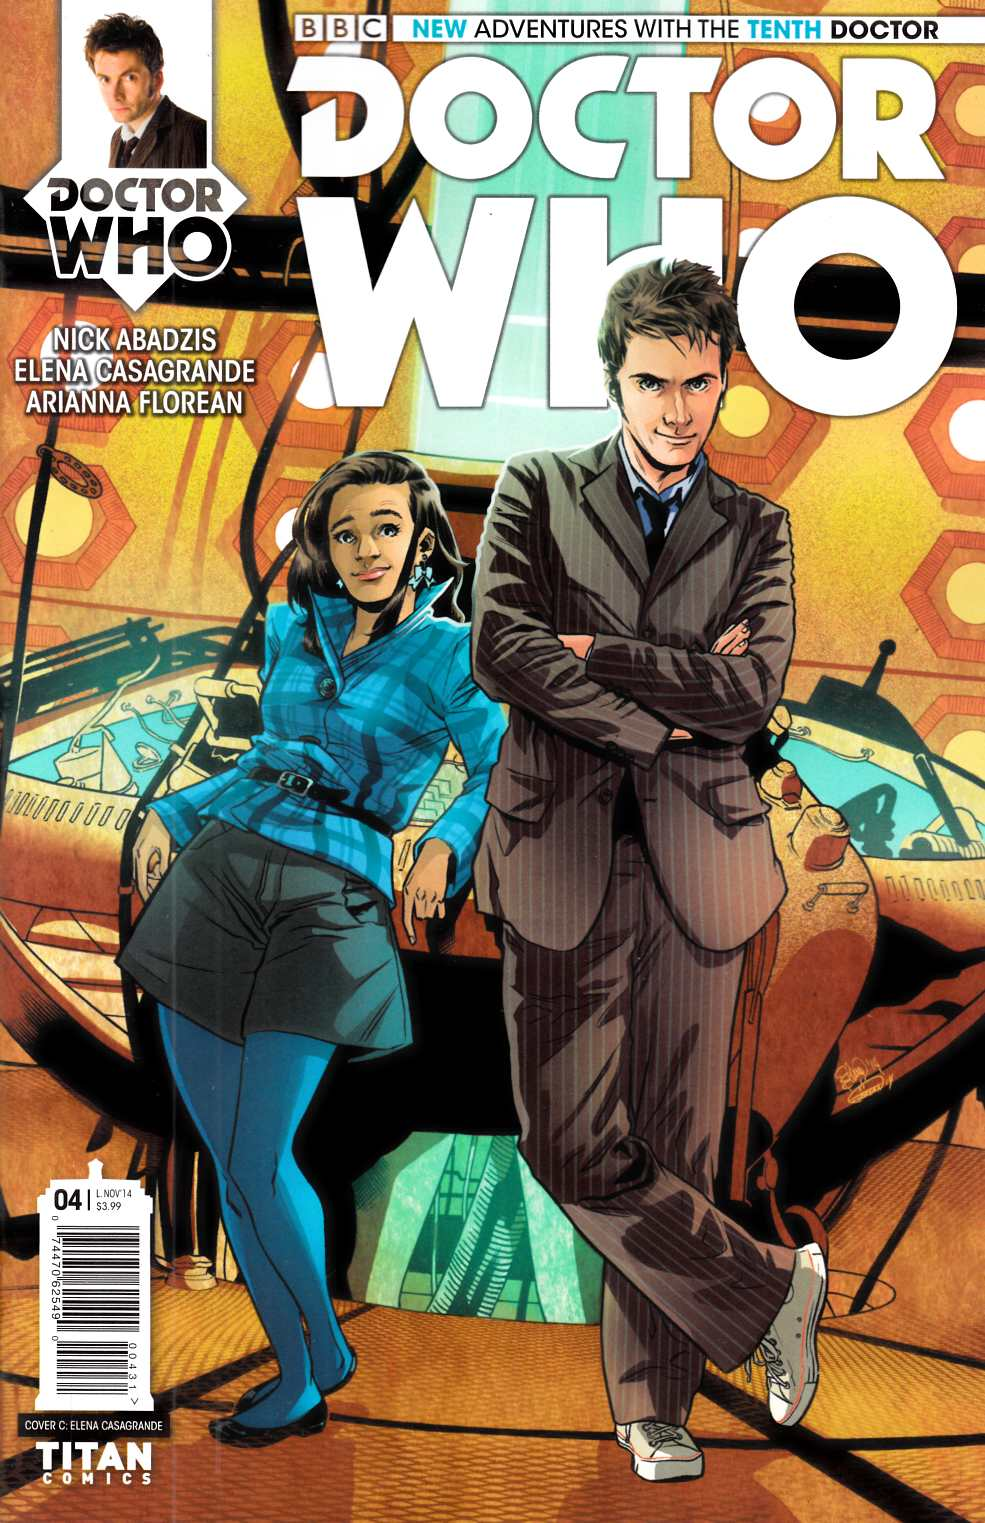 Doctor Who 10th Doctor #4 Casagrande Incentive Cover [Titan Comic]